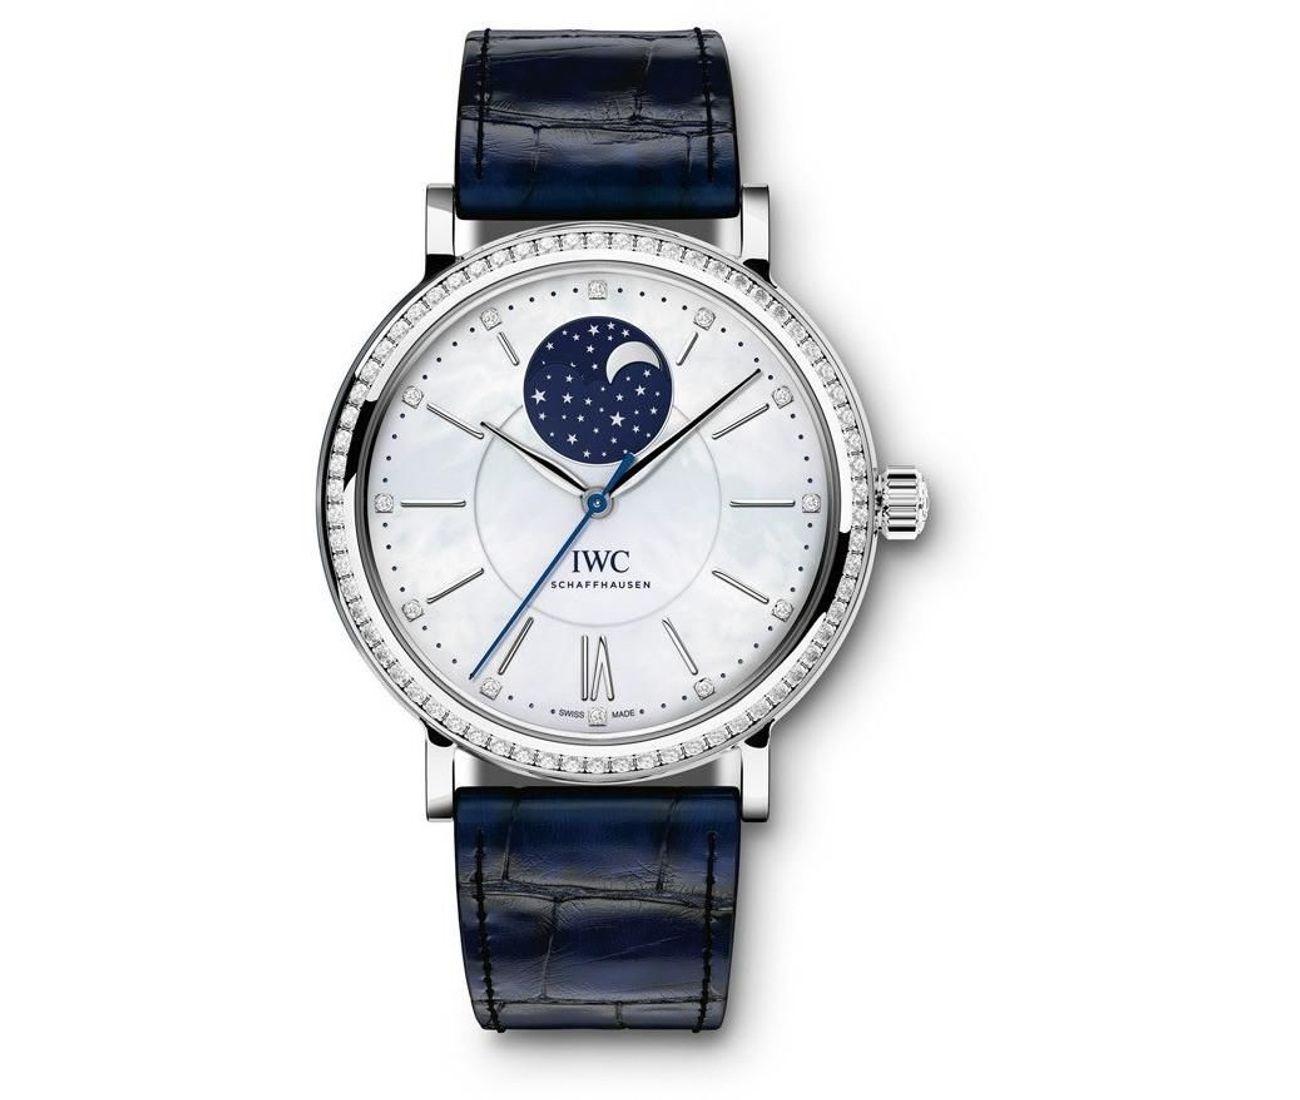 The Portofino Mid Size Automatic Moon Phase